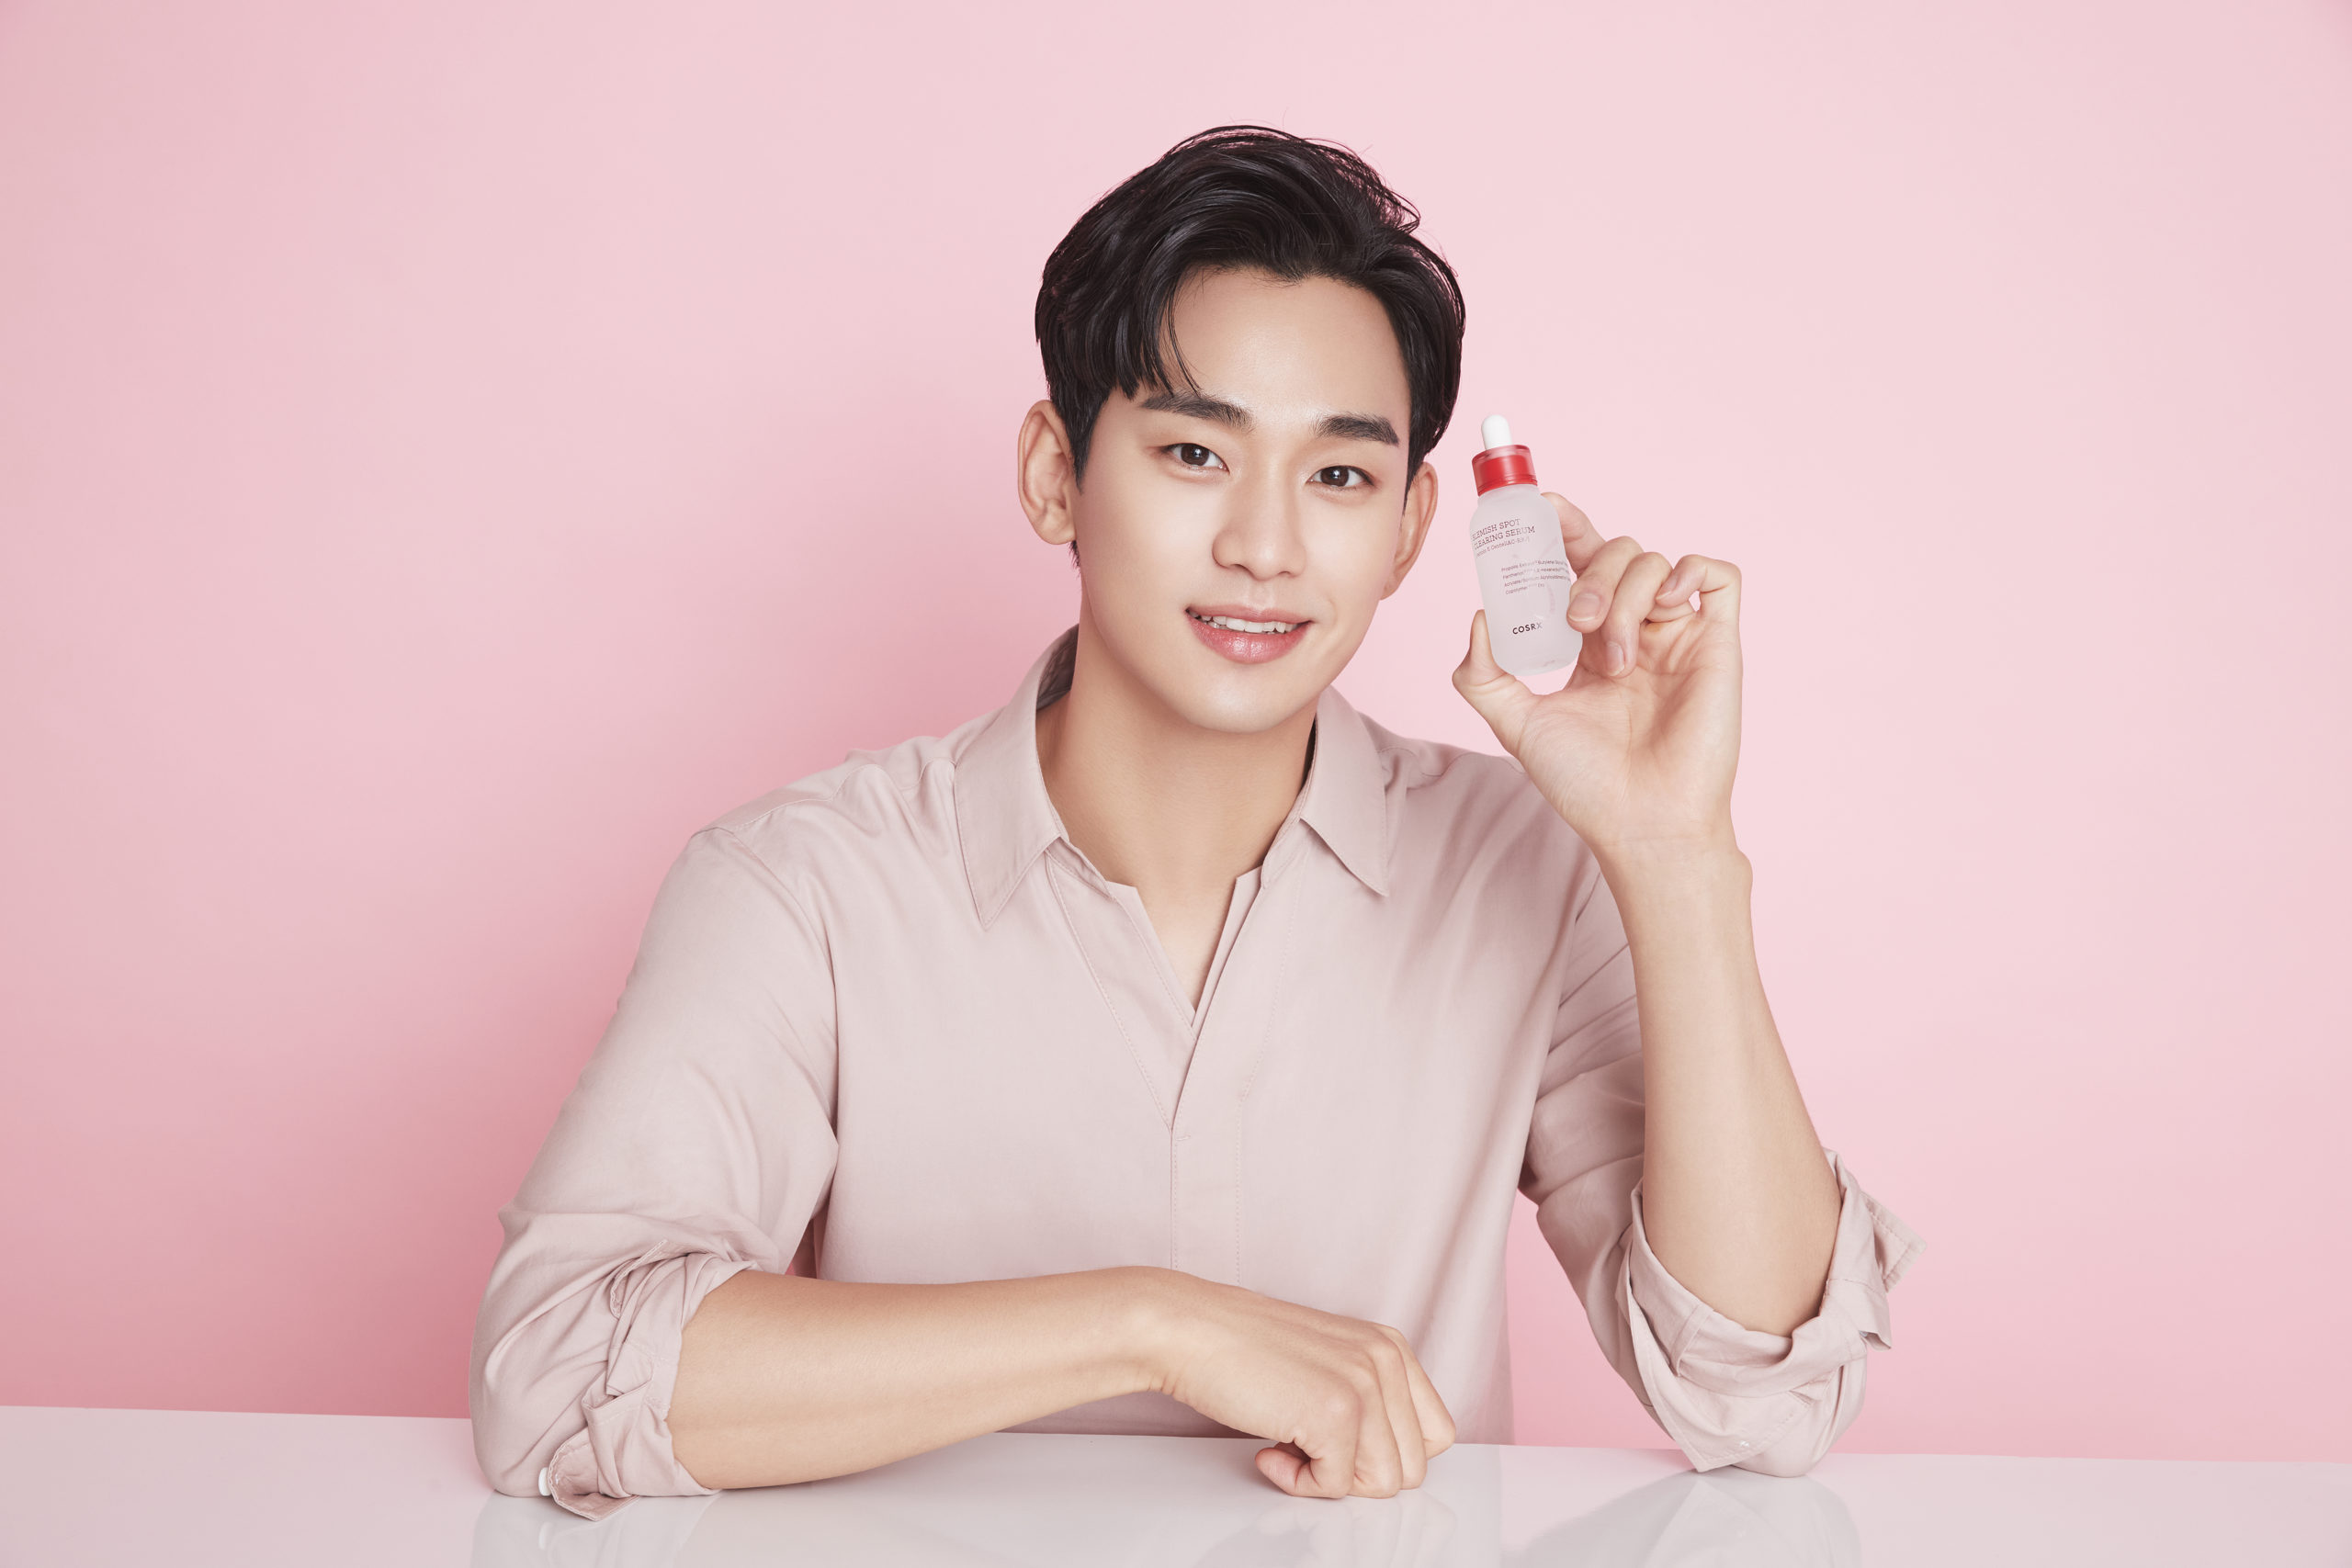 COSRX Mega sale up to 60% discount off on Shopee; Kim Soo Hyun as COSRX ambassador